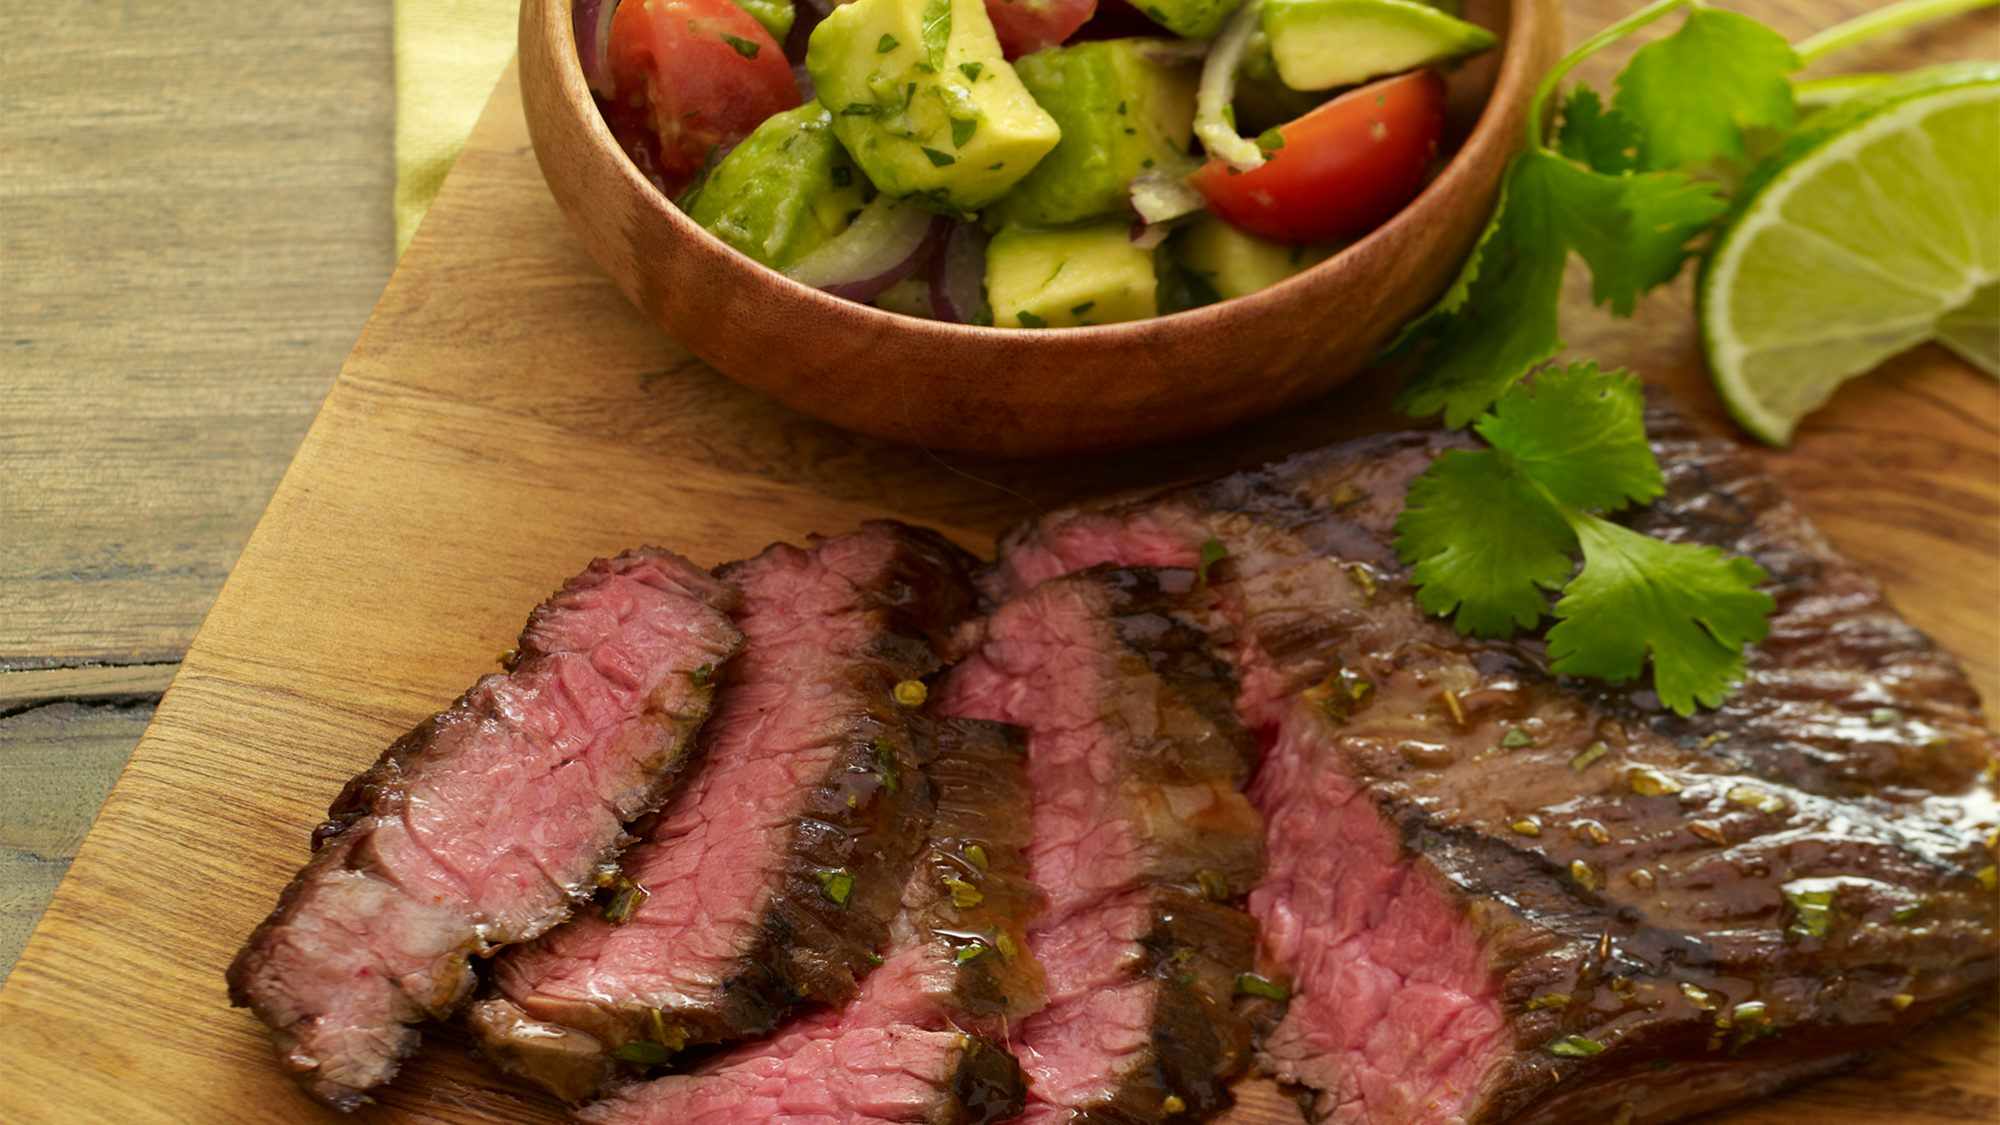 Tequila Lime Steak with Avocado Chopped Salad